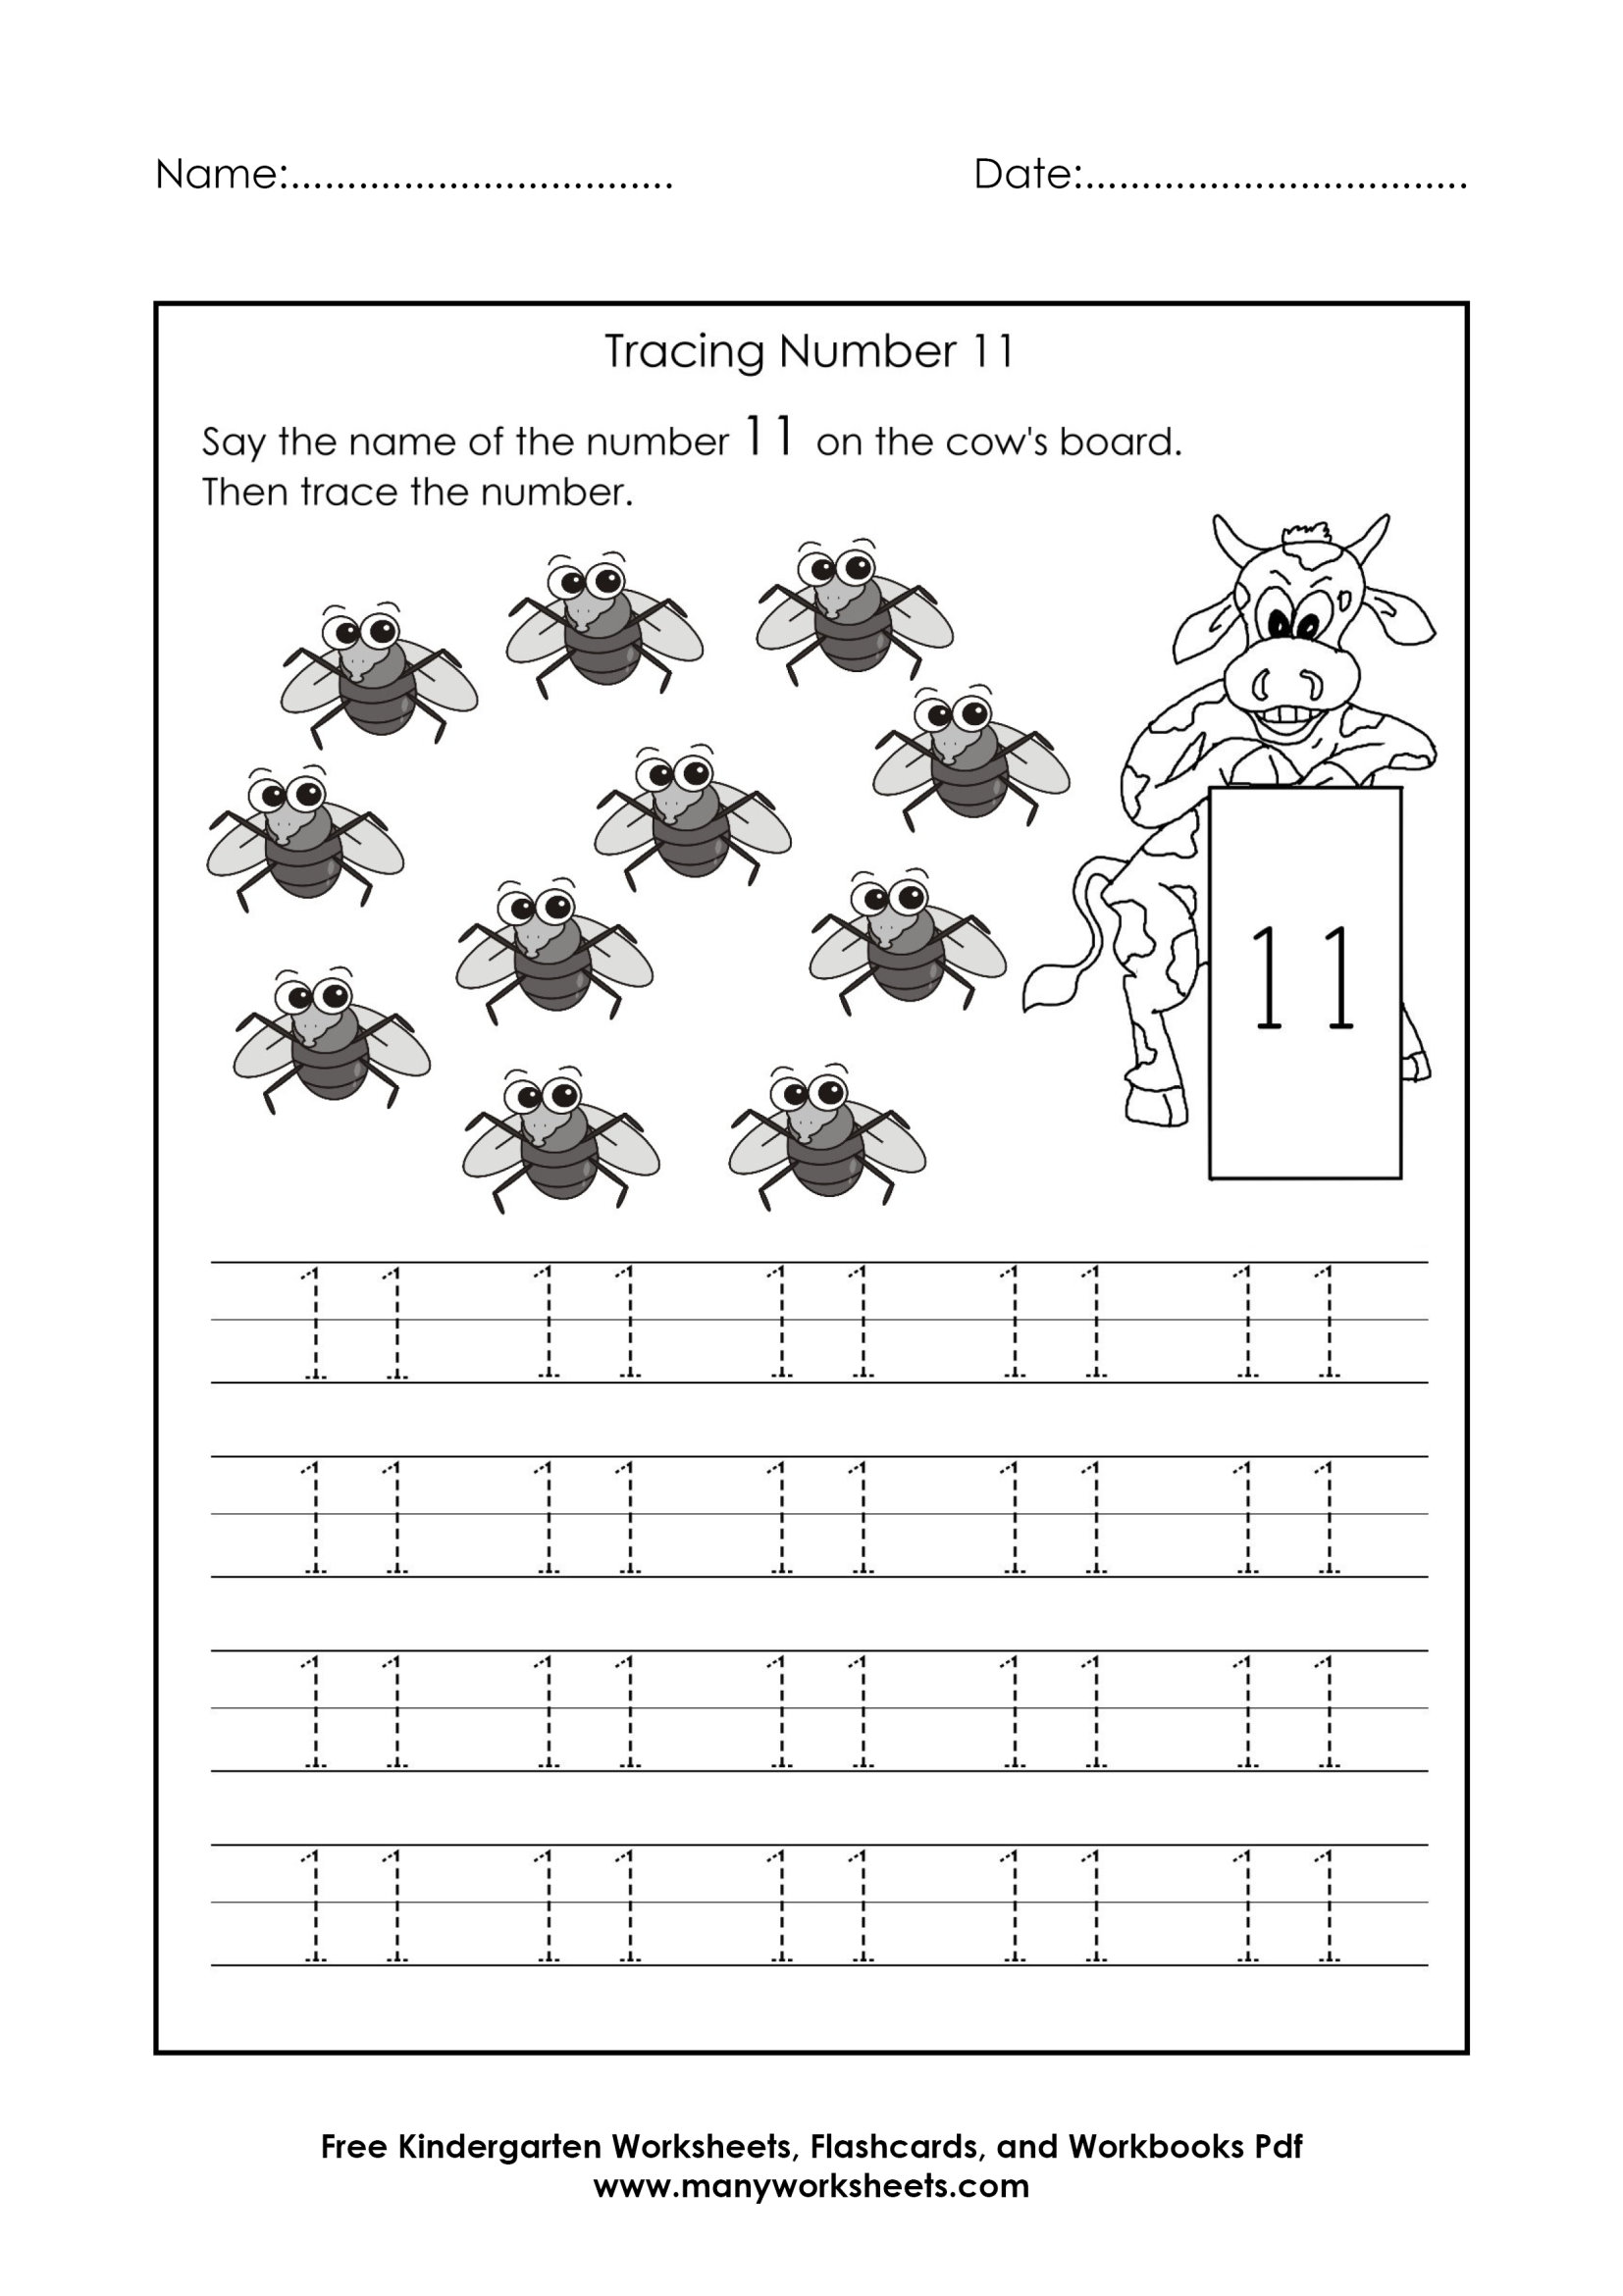 Tracing Number 11 Worksheets